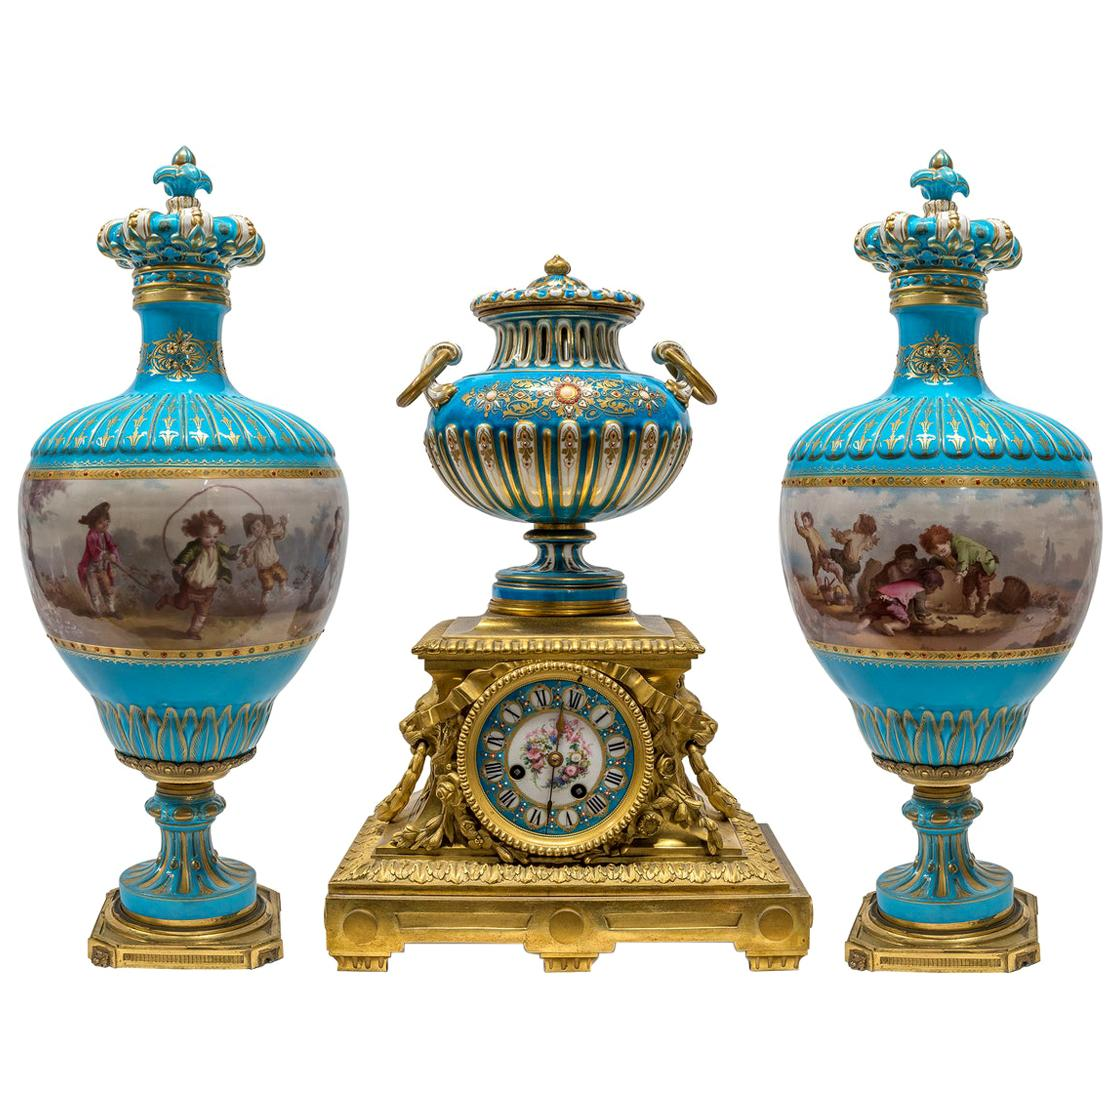 19th Century Turquoise Sèvres Style Jeweled Porcelain and Ormolu Clock Set